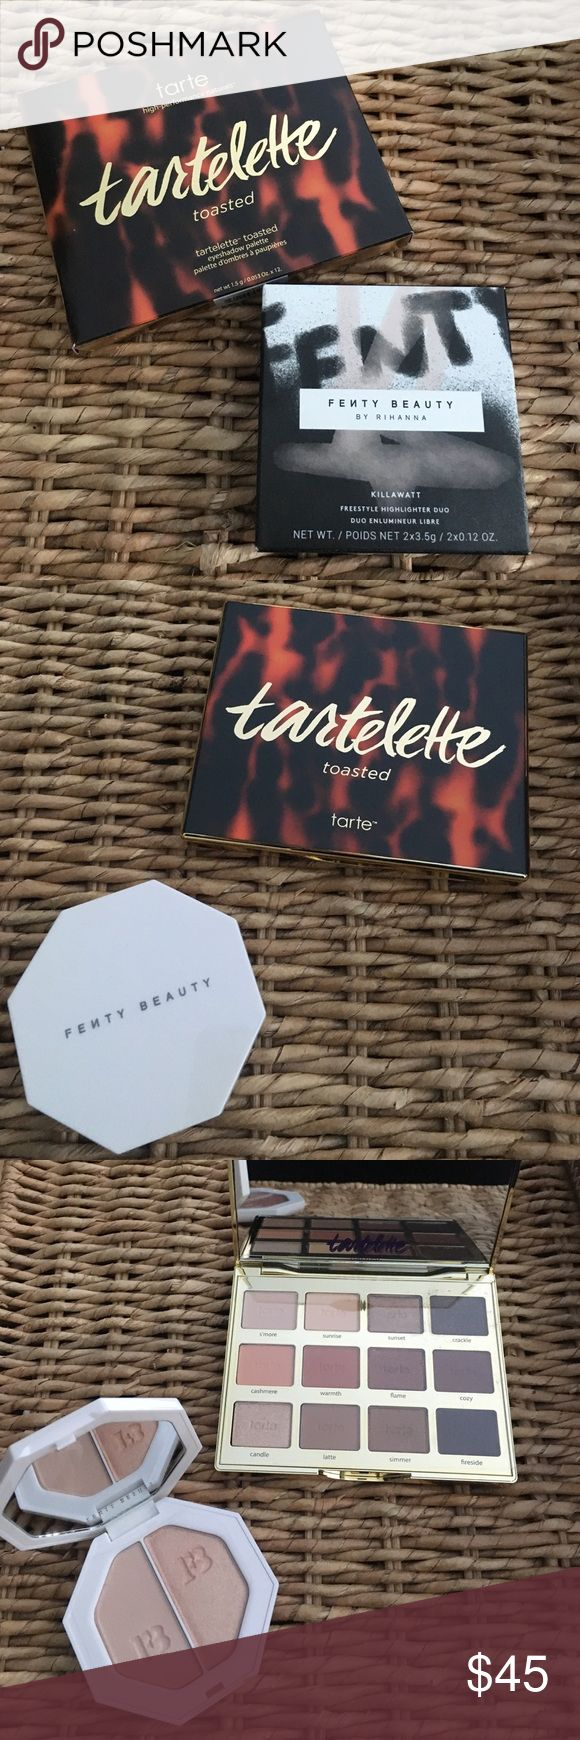 Brand New Tarte Palette & Fenty Beauty Highlighter Brand new, never used beauty bundle! Tartlette Toasted eyeshadow palette and Killawatt freestyle highlighter duo. Can be sold separately. Eyeshadow palette originally $46. Fenty Highlighter originally $34. tarte Makeup